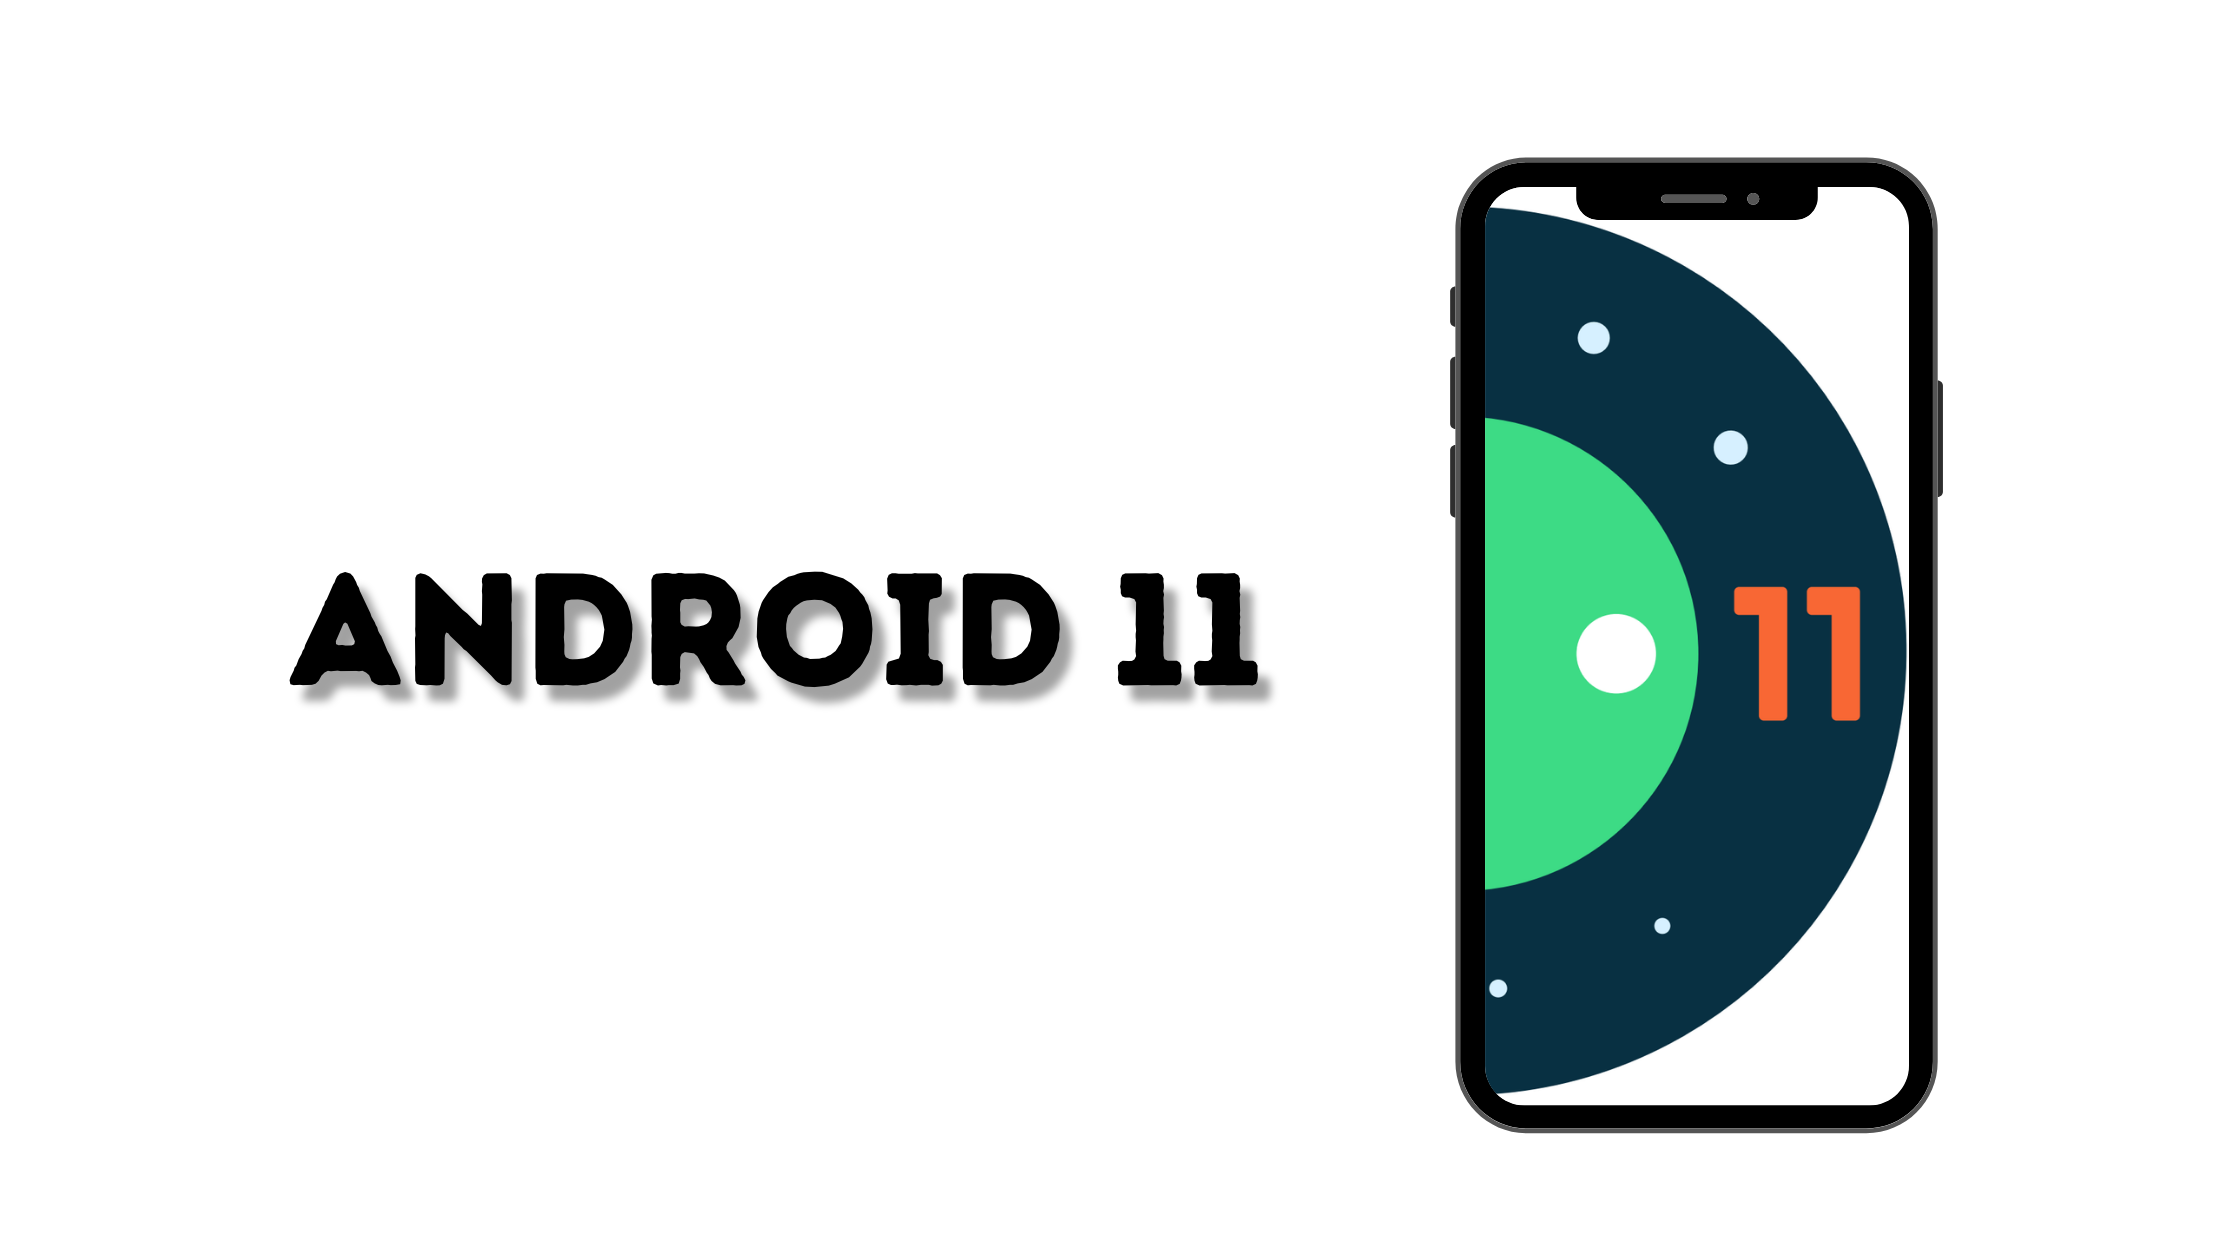 ANDROID 11: EVERYTHING YOU NEED TO KNOW